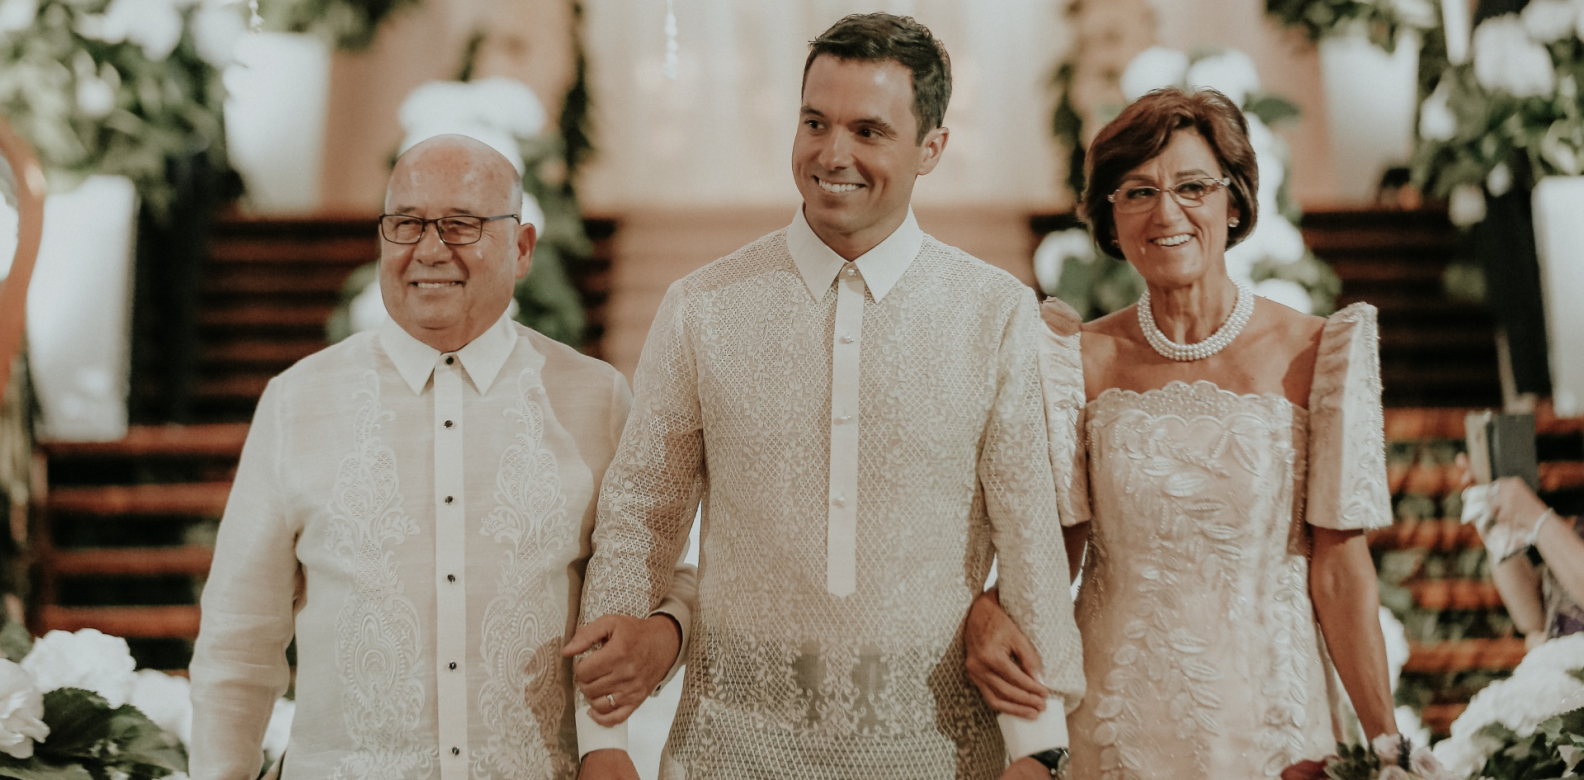 The groom with parents Jose Aguilar Guillén and Alejandra Garcia Soriano